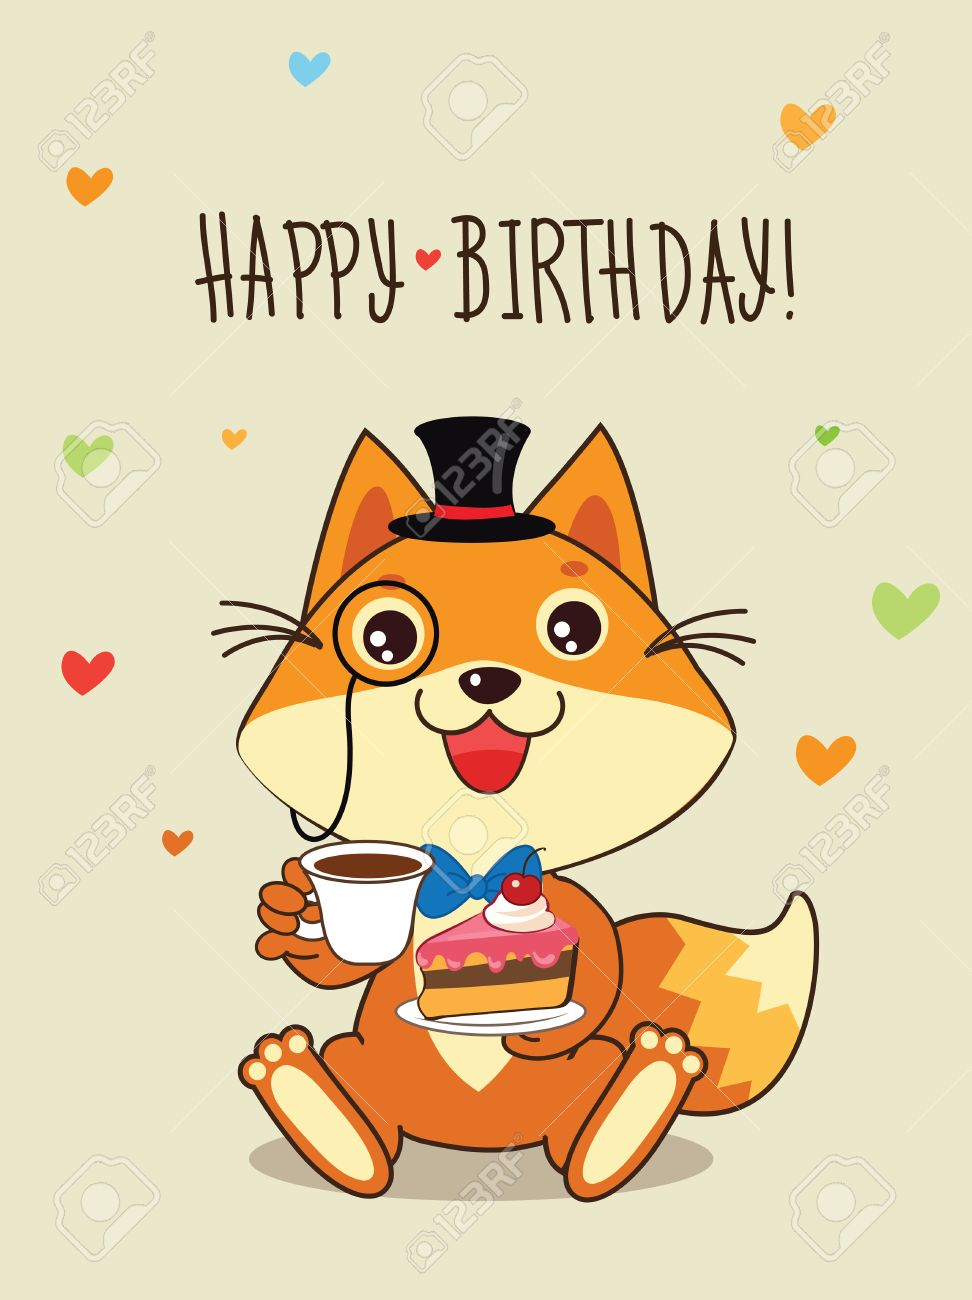 Happy Birthday Card Funny Fox With In A Bowler Hat And Cake His Hands